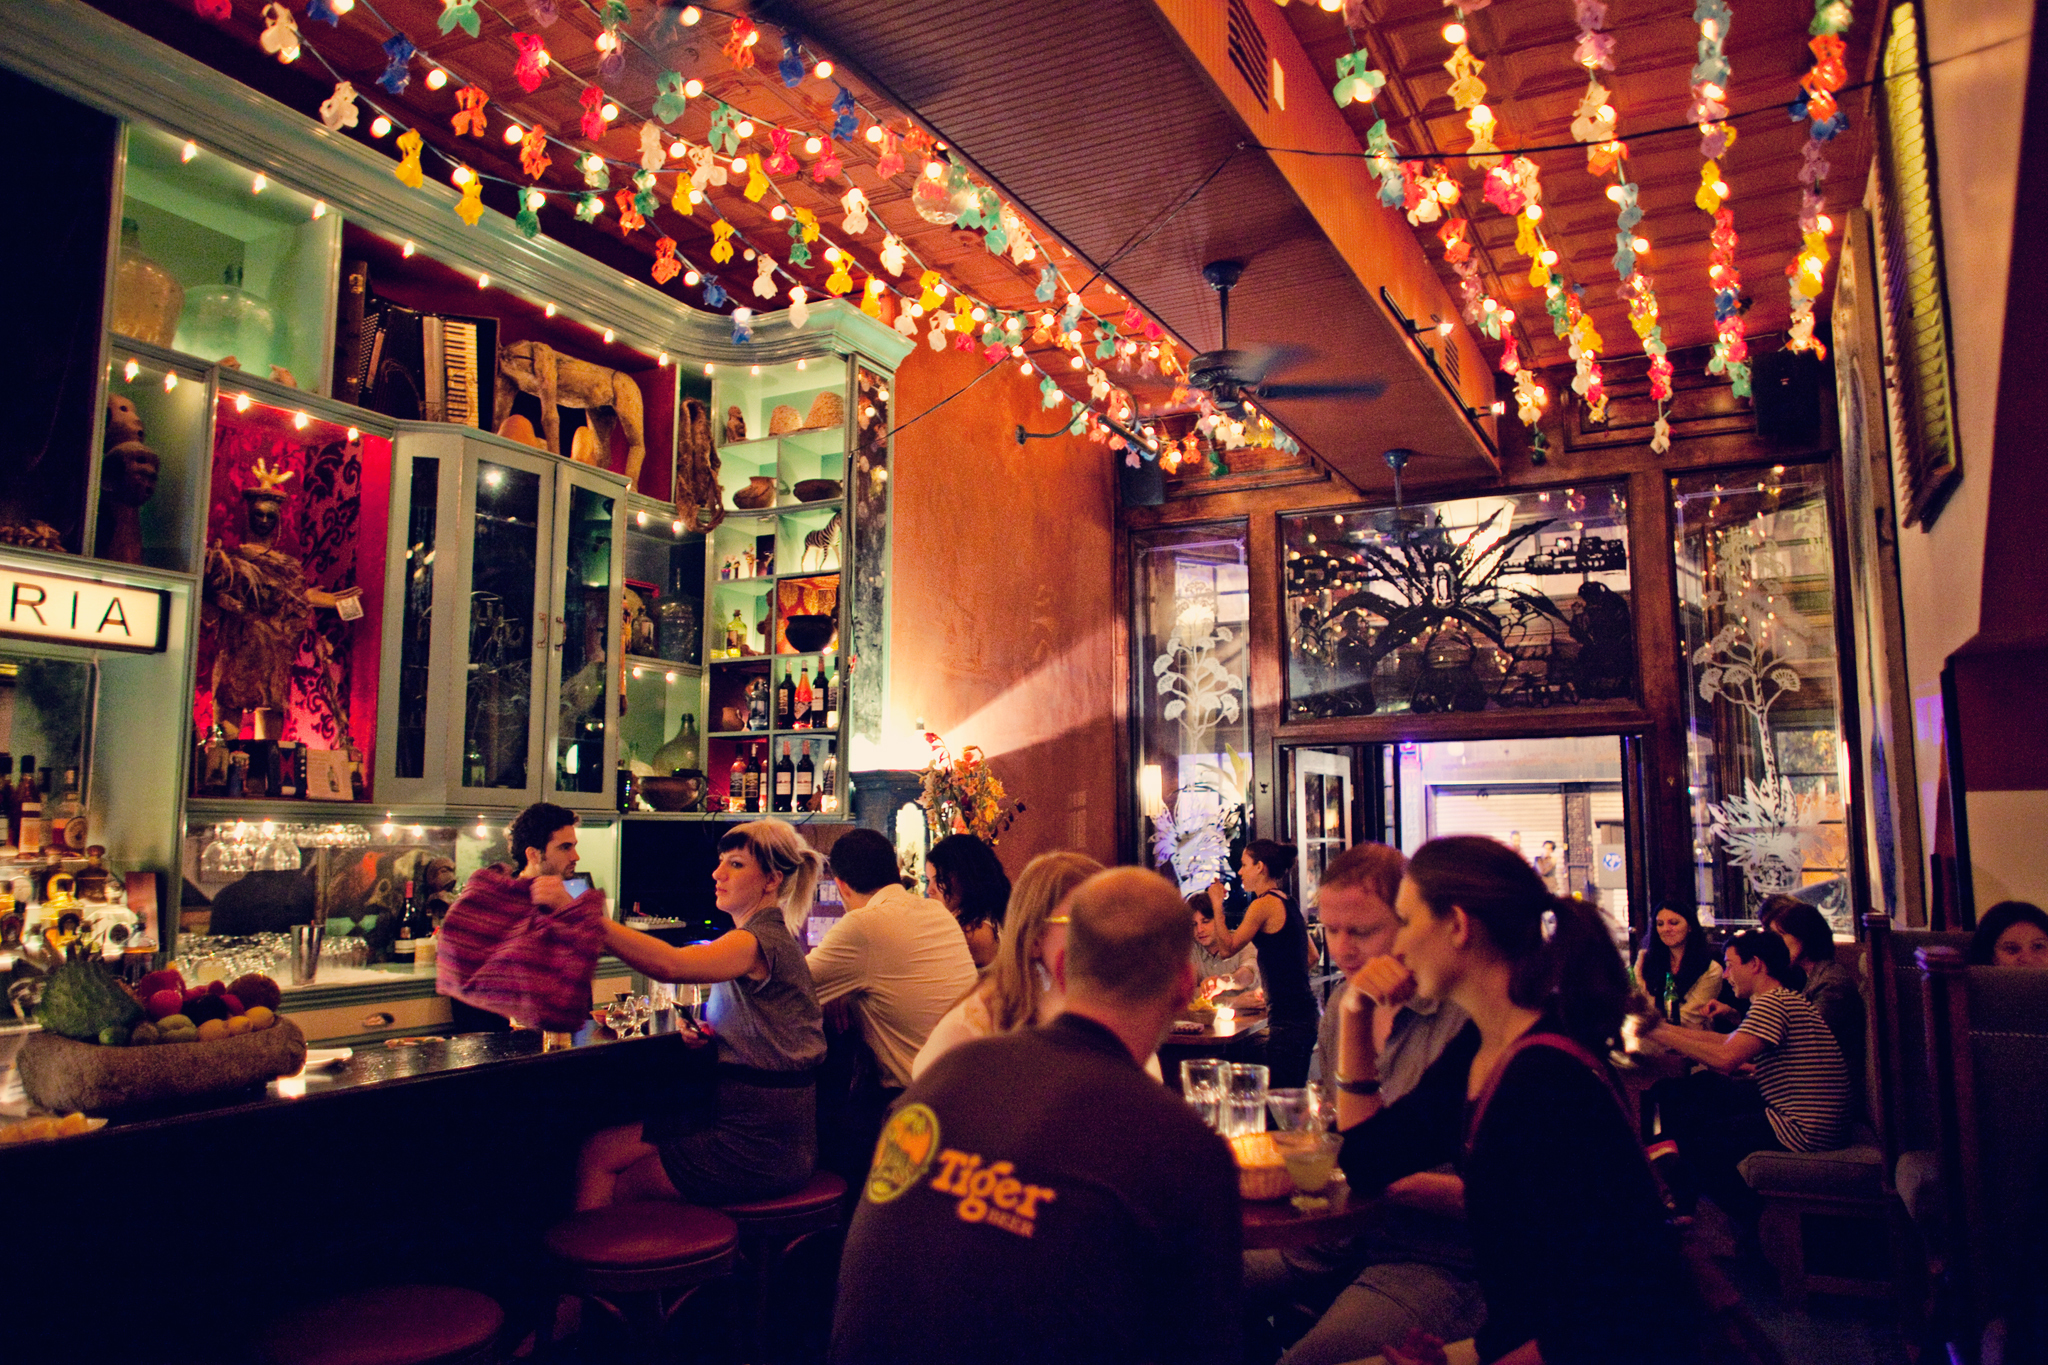 Best date spots on the Lower East Side